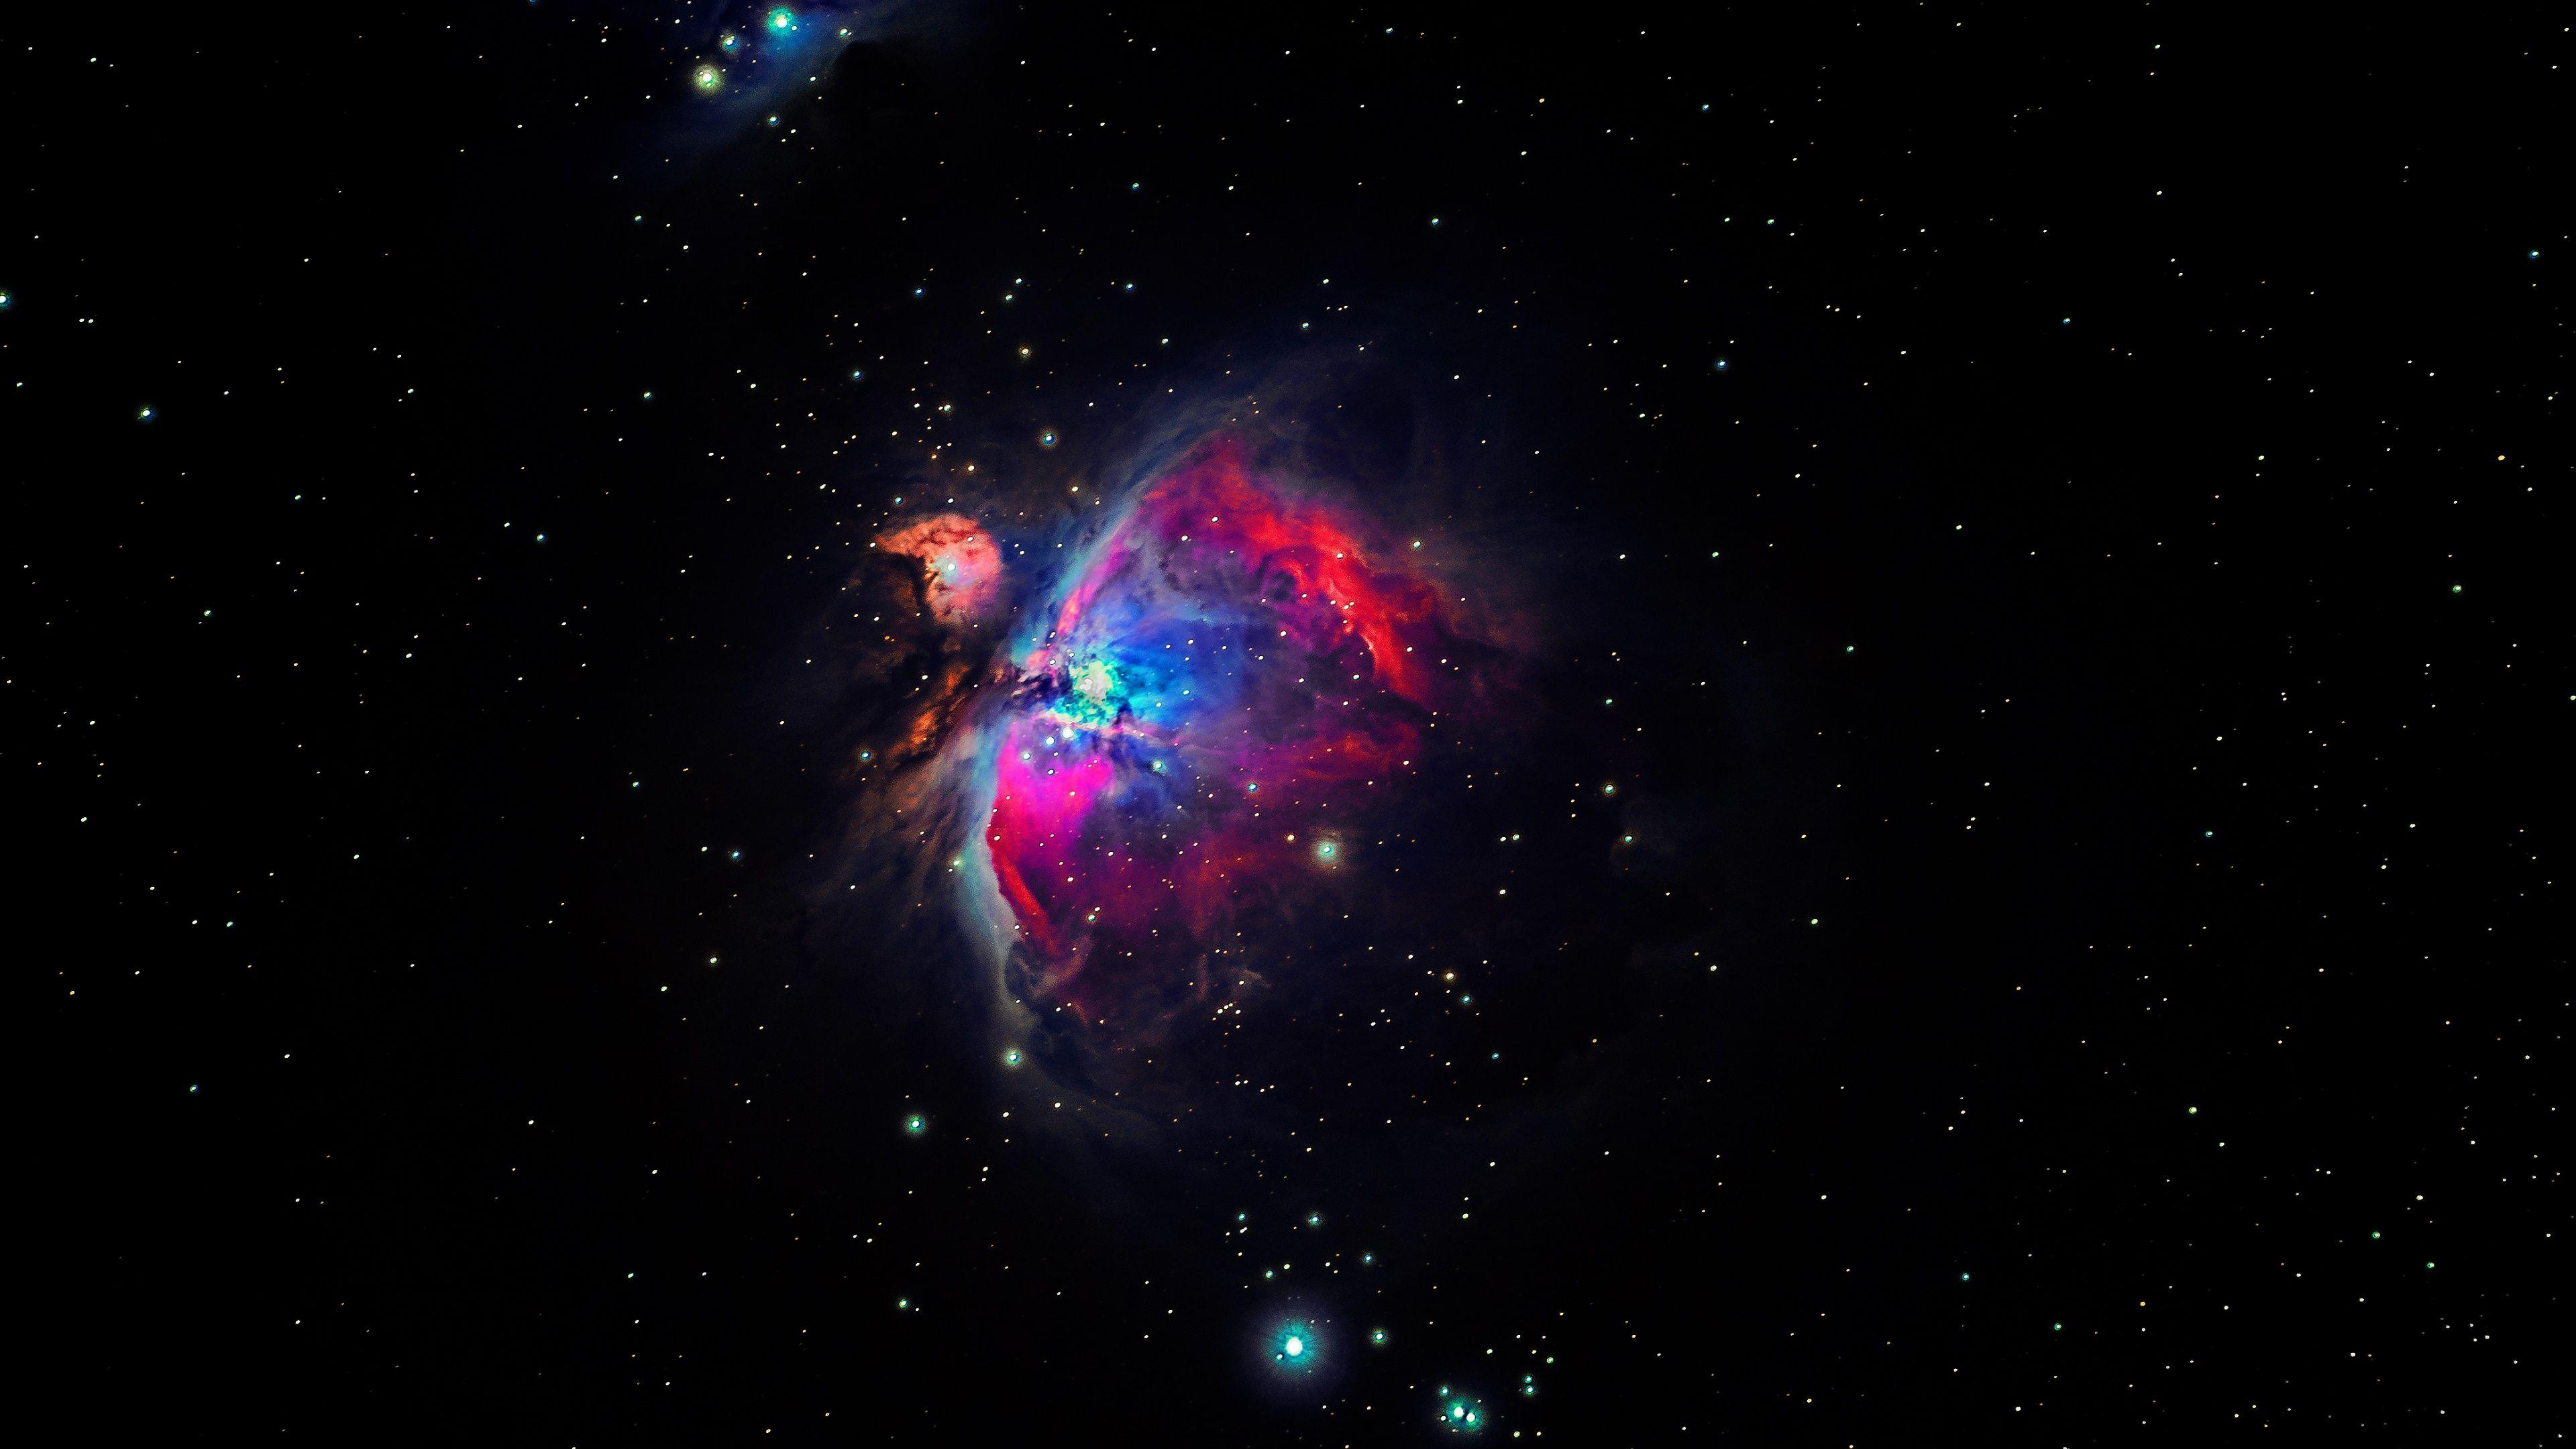 Galaxy Nebula Hd Wallpapers - We hope you enjoy our ...